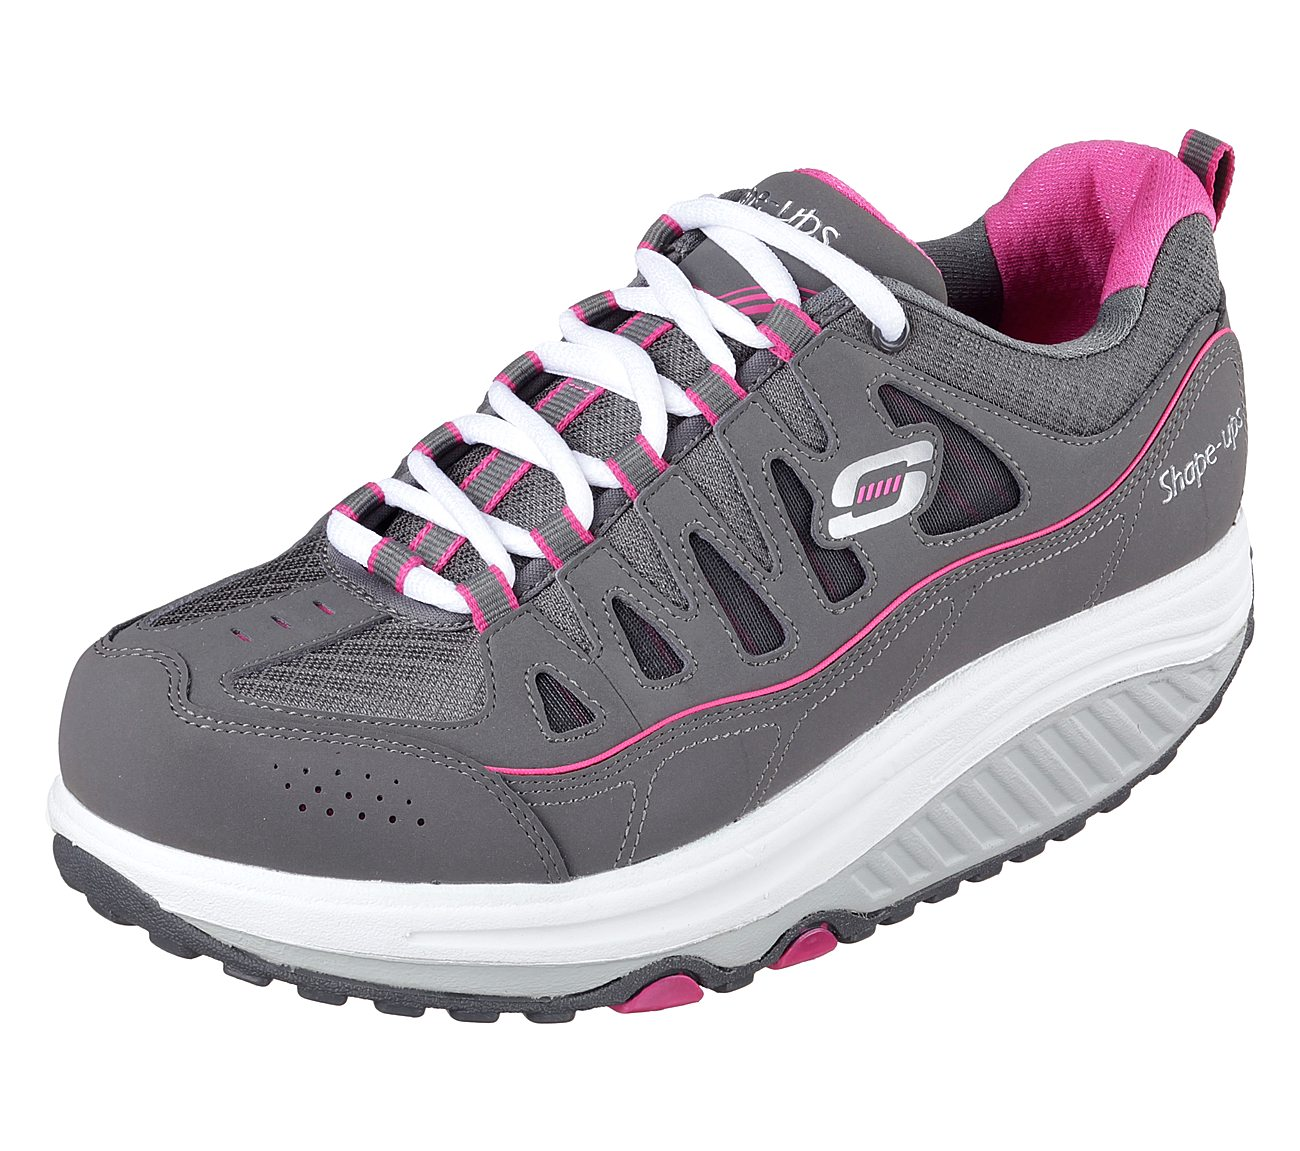 skechers shape ups air cooled memory foam